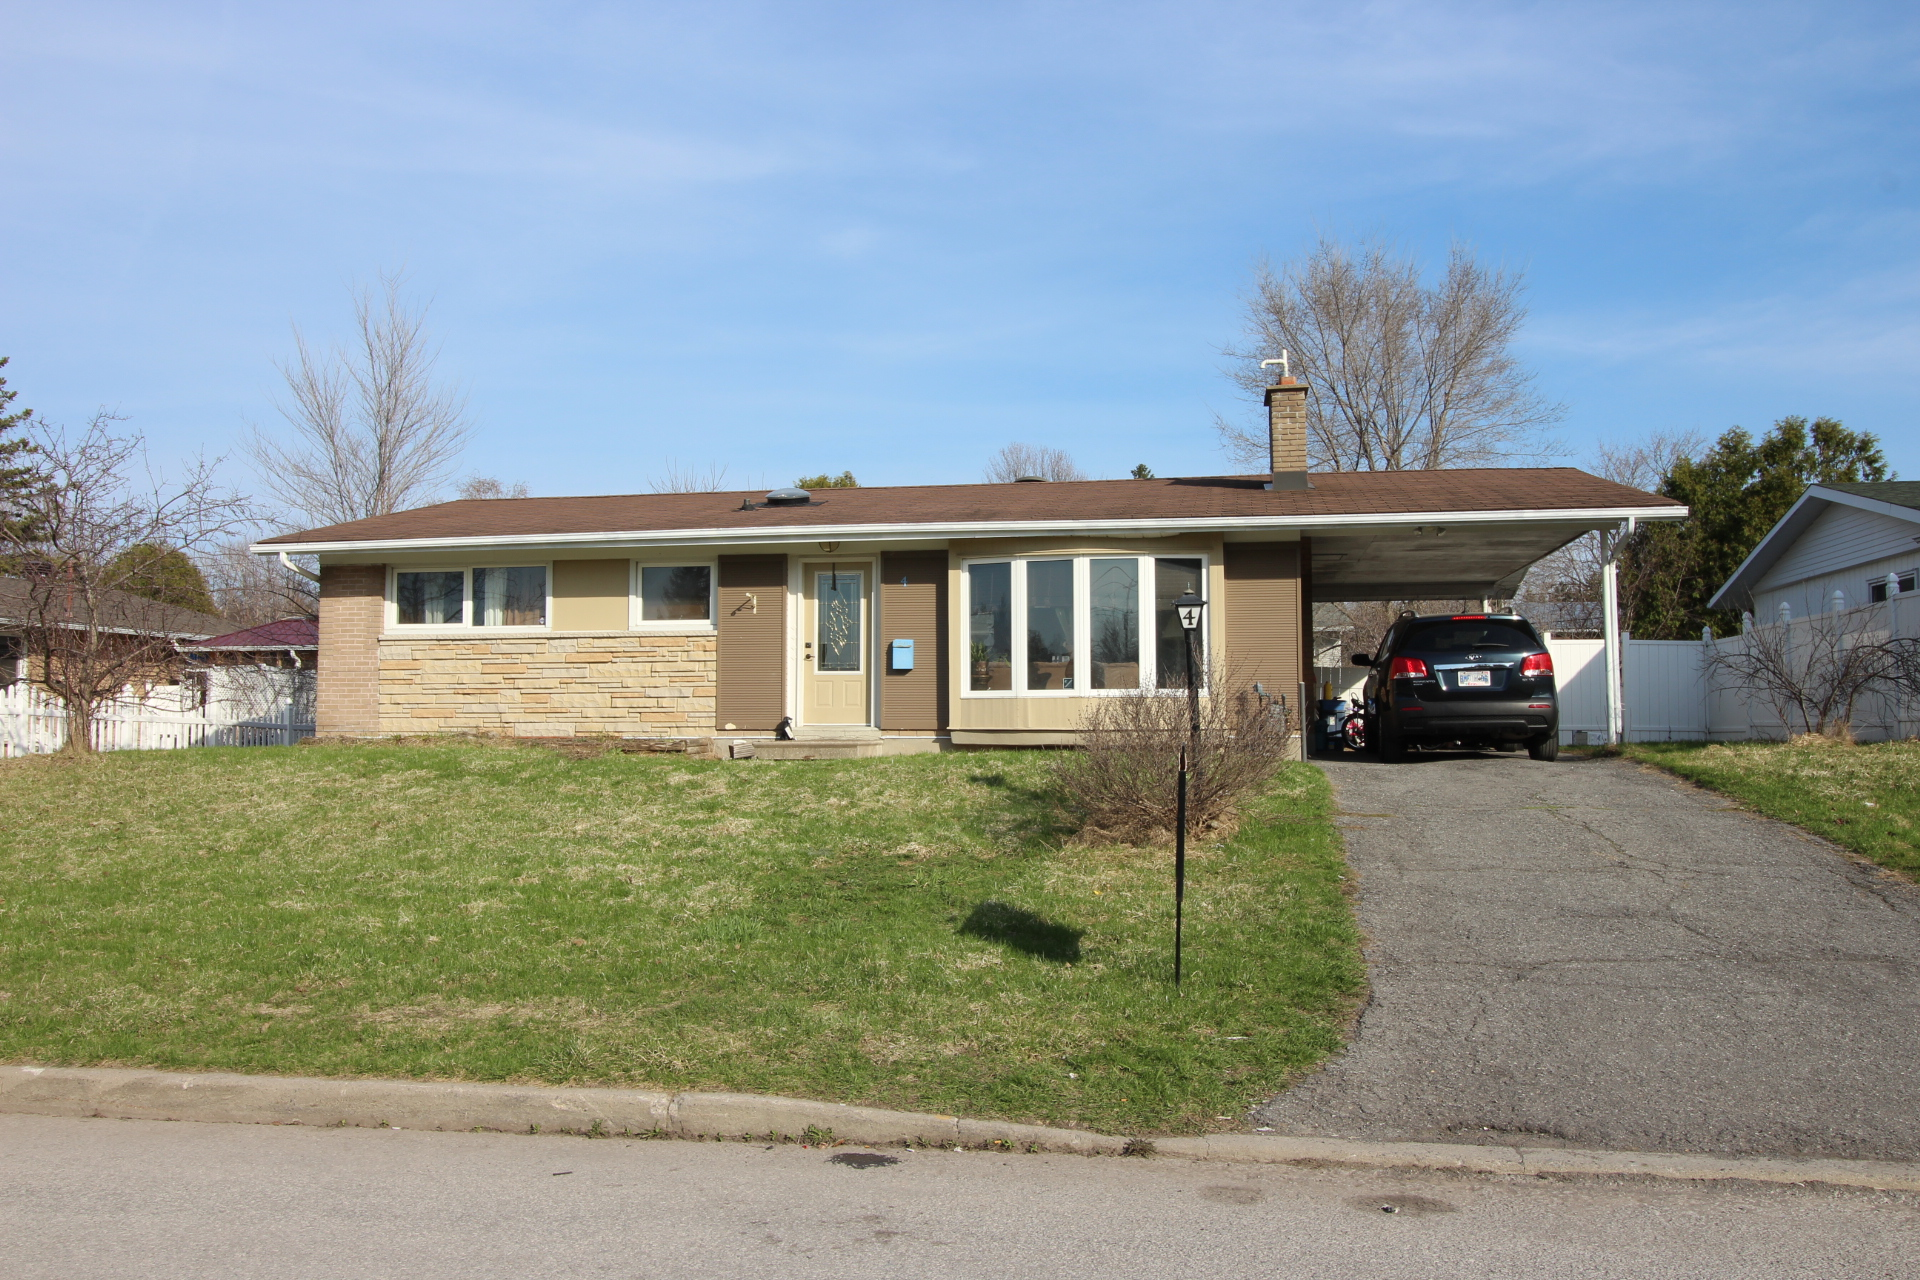 4 Kevin Ave - Live in or Invest in this 3 PLUS 1 Bedroom Bungalow in Bayshore area!